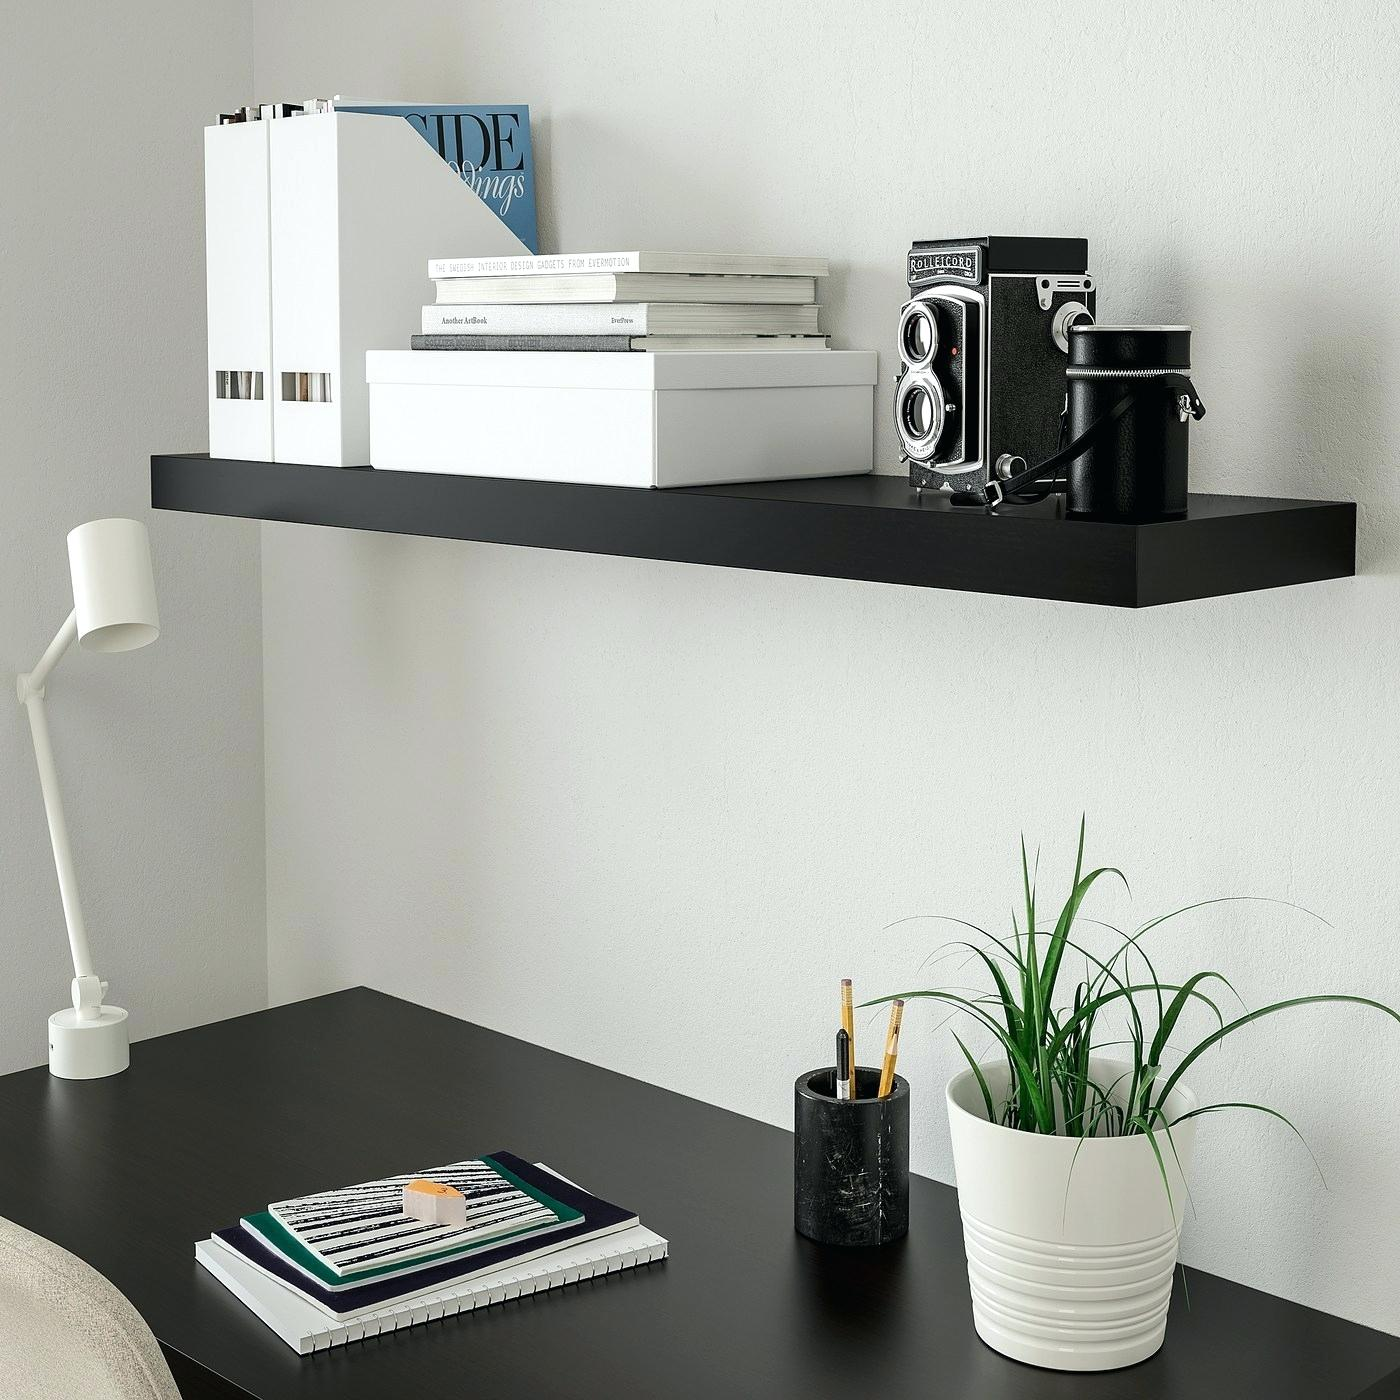 lack wall shelf black brown ikea floating shelves best garage shelving mounted desk storage with baskets sky shoe cabinet hanging pottery barn wood size hidden compartment closet